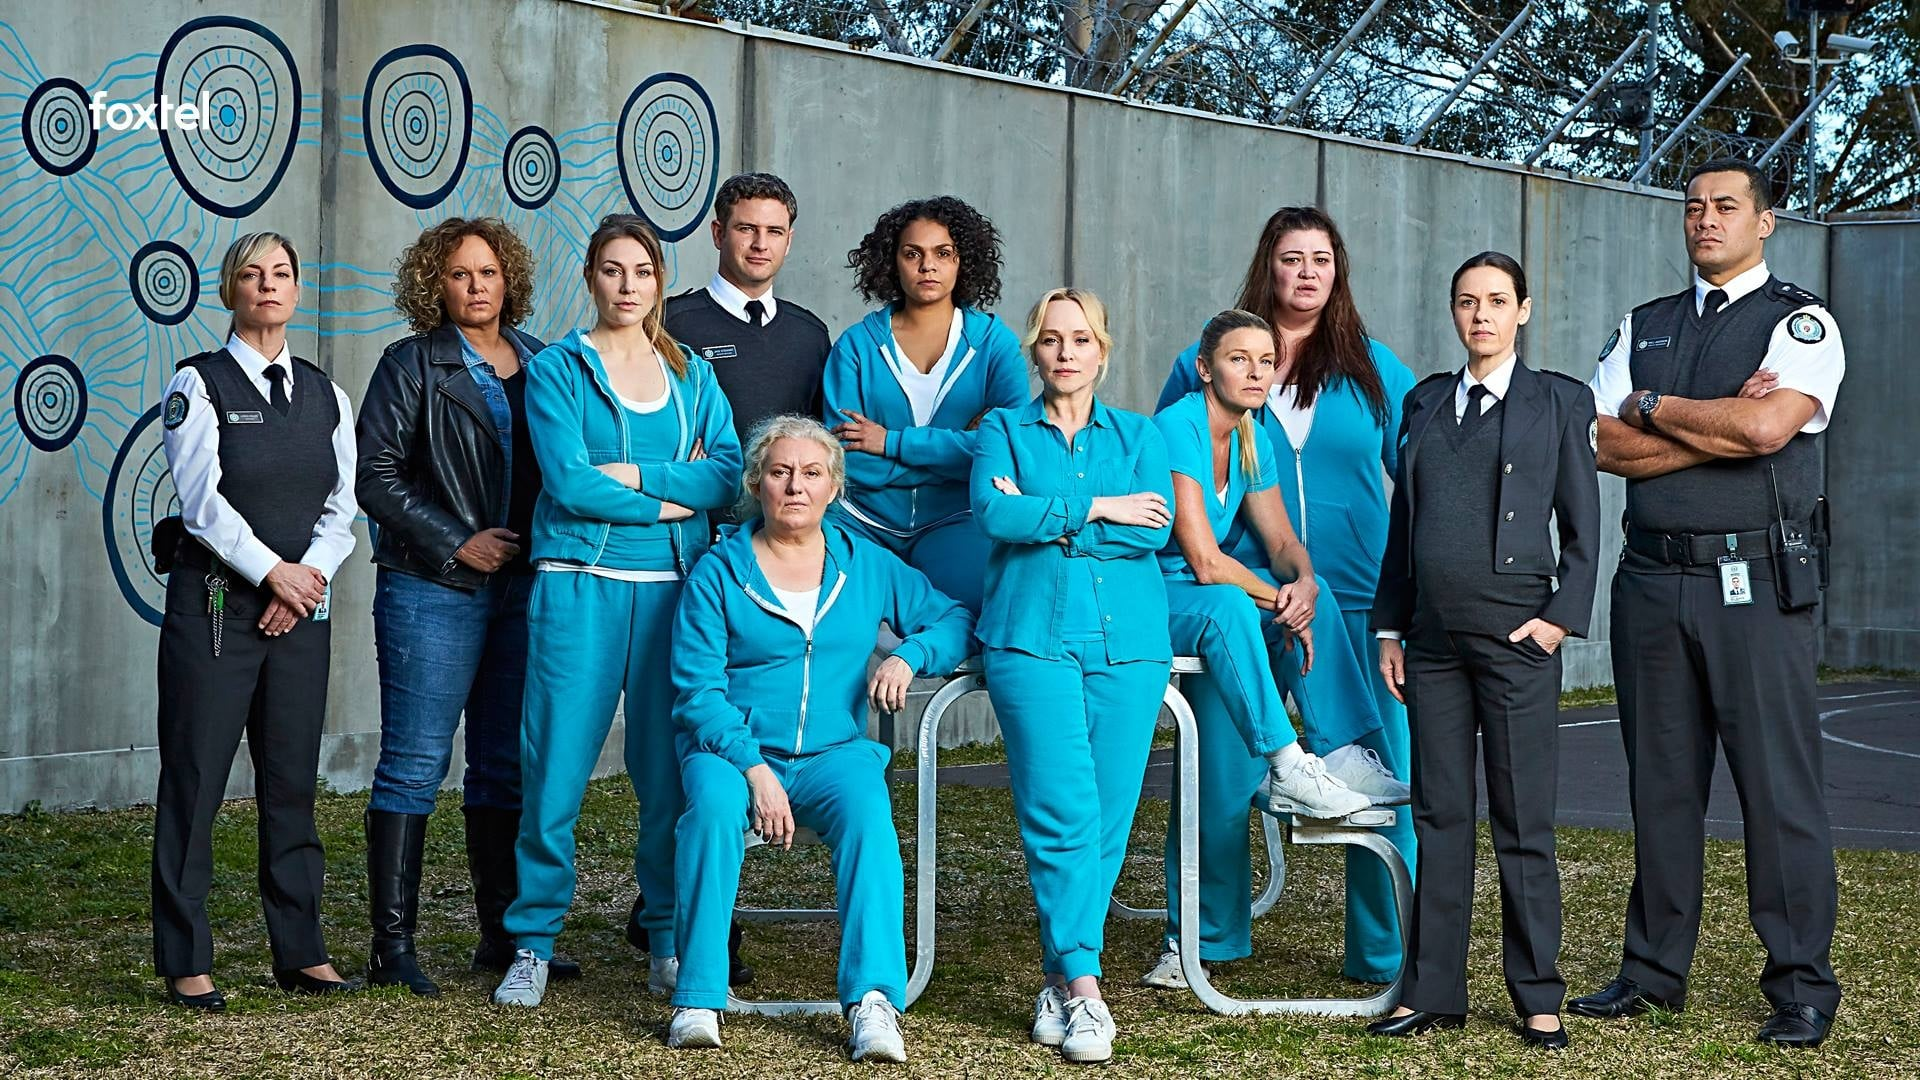 Wentworth Season 8 Episode 5